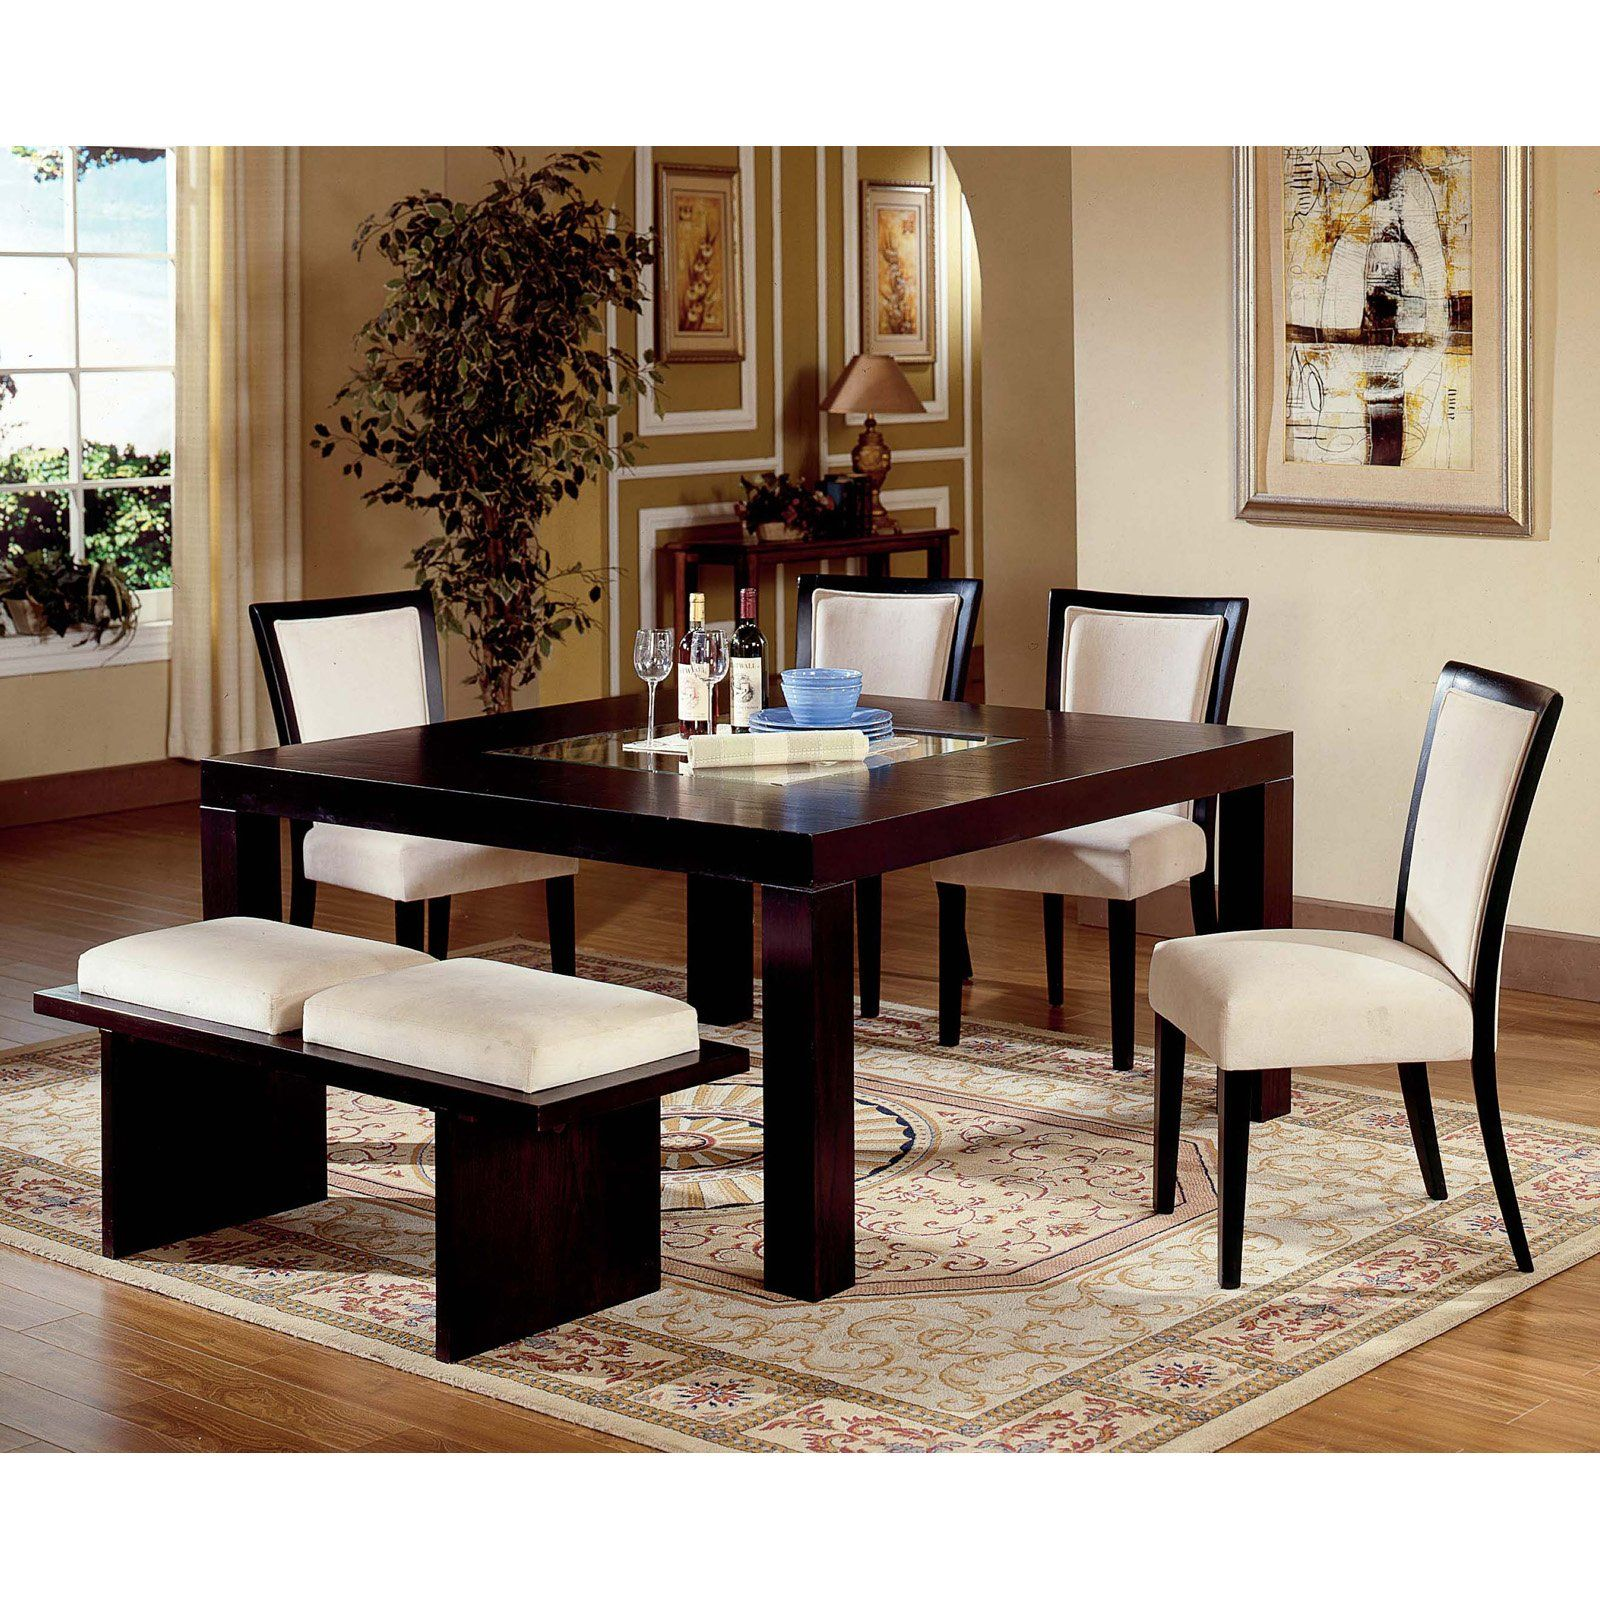 Have To Have Itsteve Silver Movado 6Piece Dining Table Set With Extraordinary Black And Brown Dining Room Sets Decorating Design